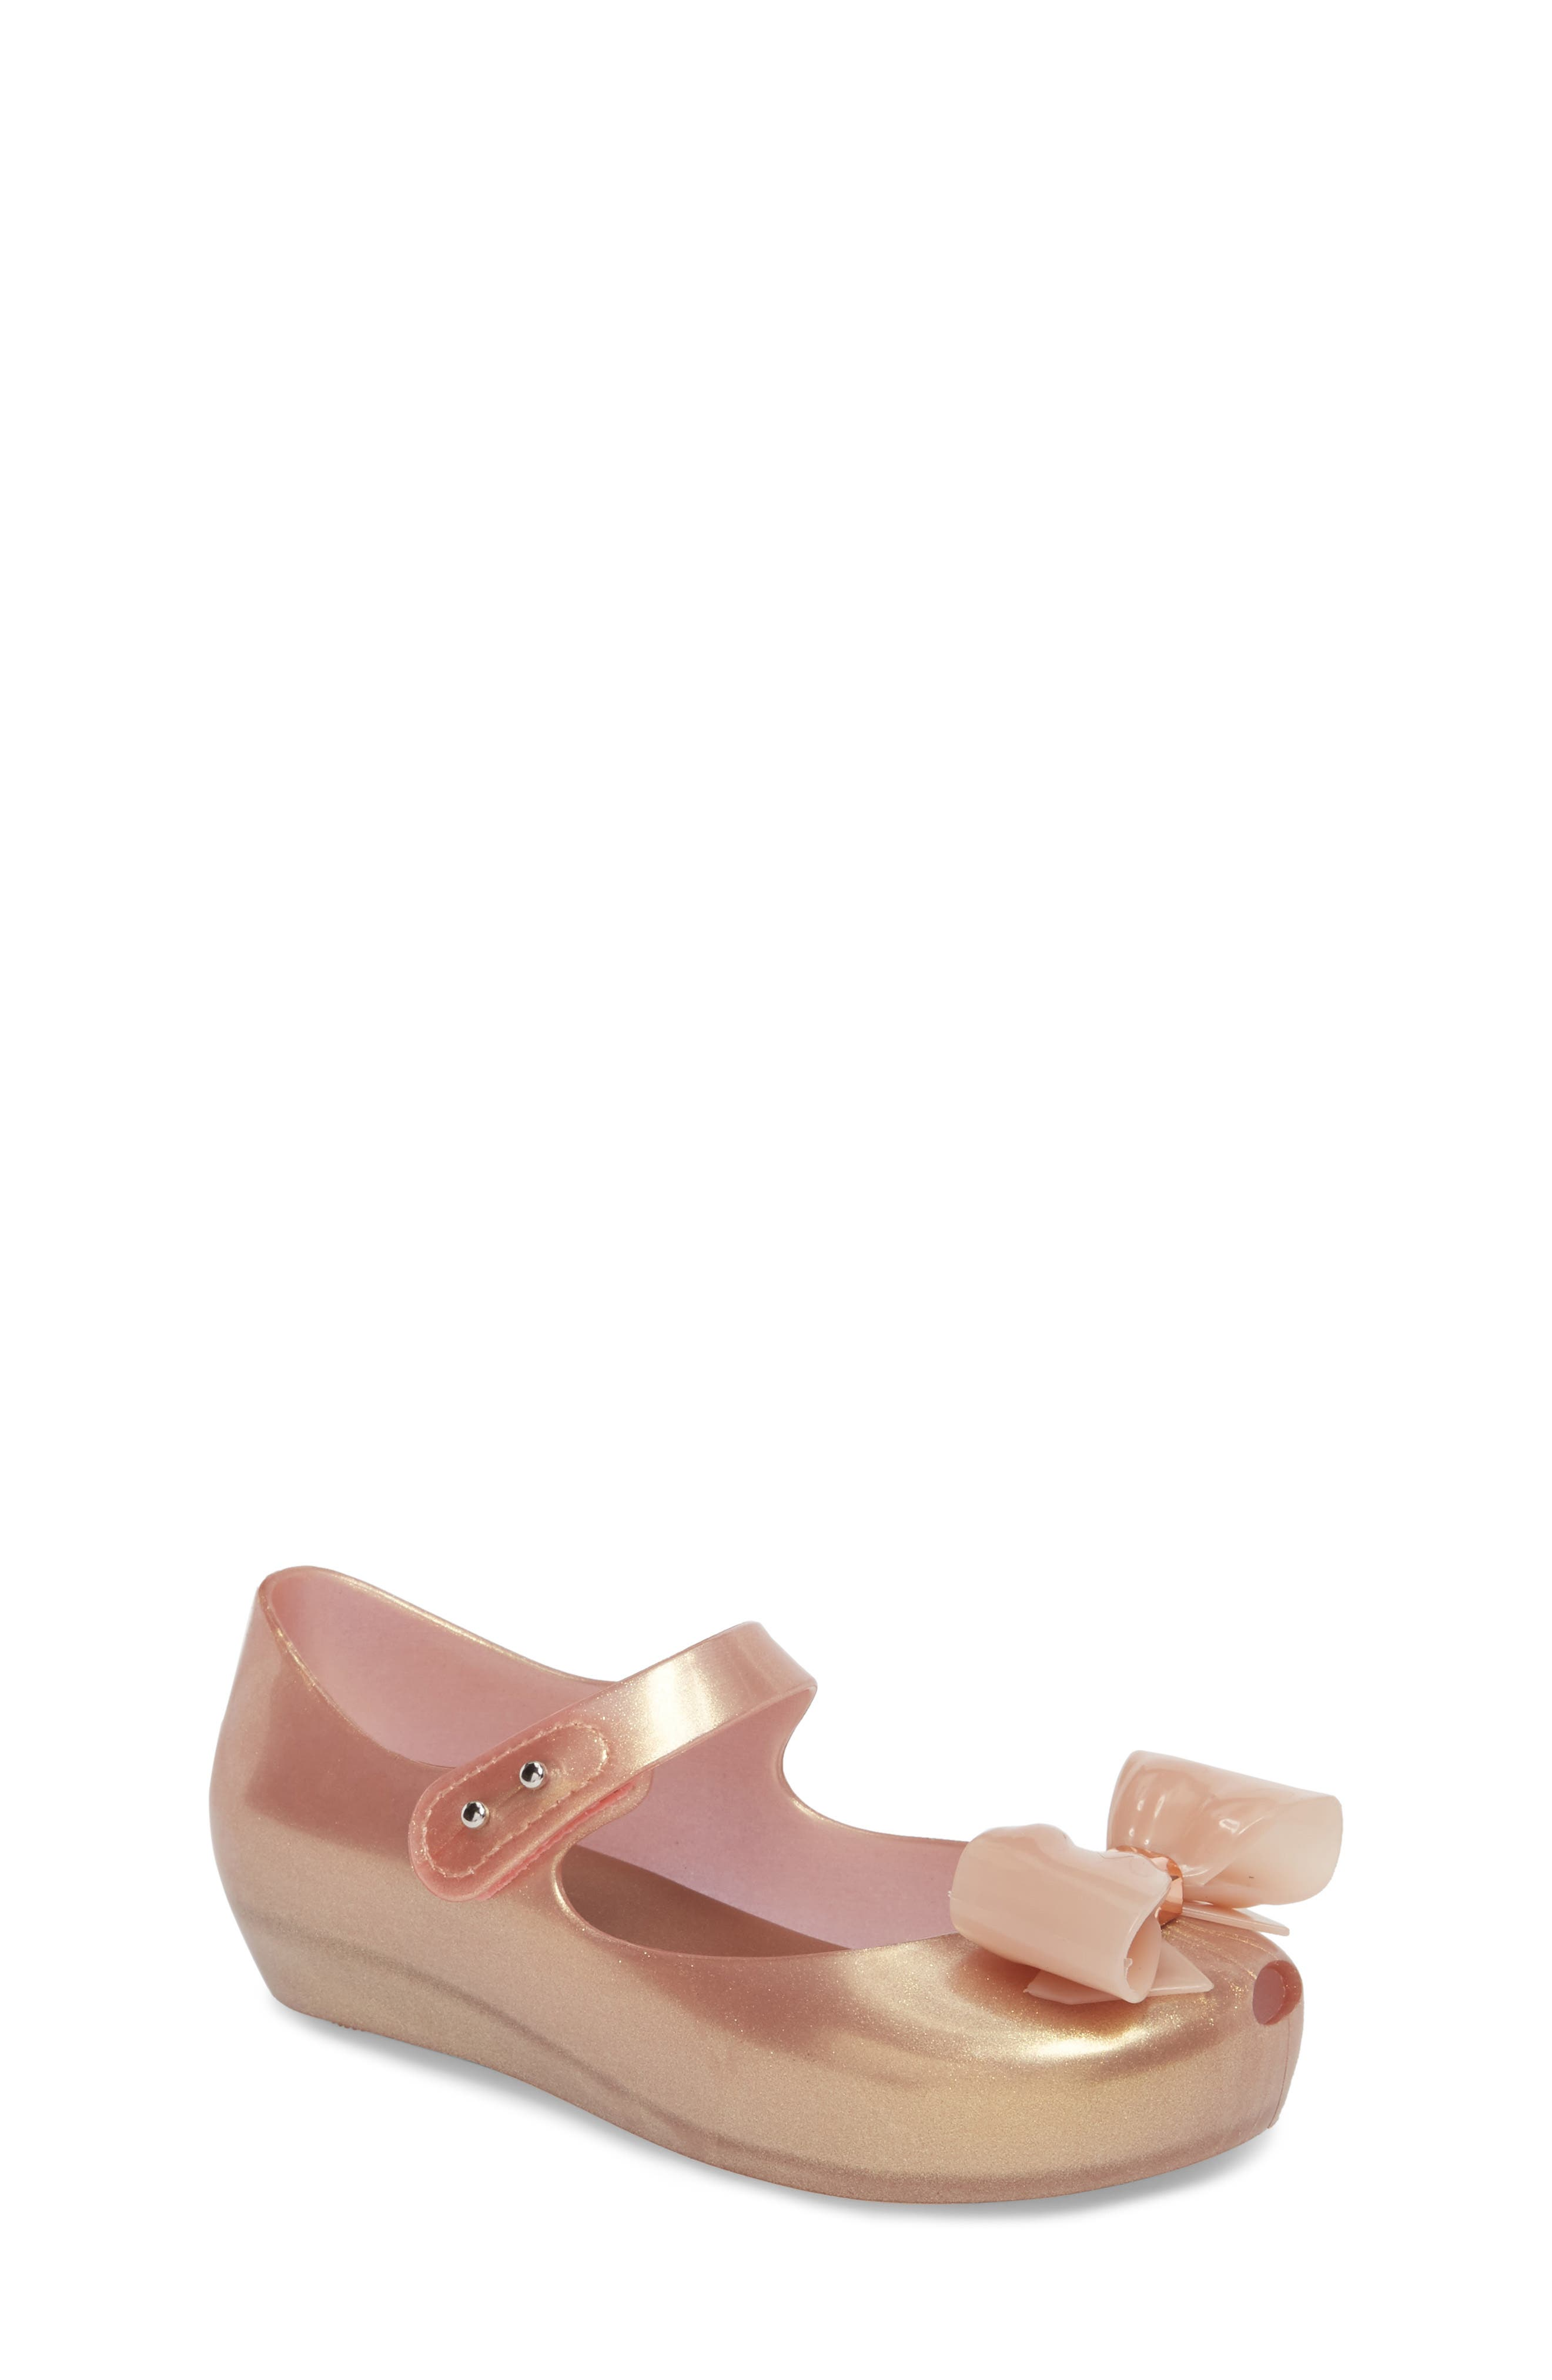 Ultragirl VIII Mary Jane Flat,                         Main,                         color, METALLIC PINK